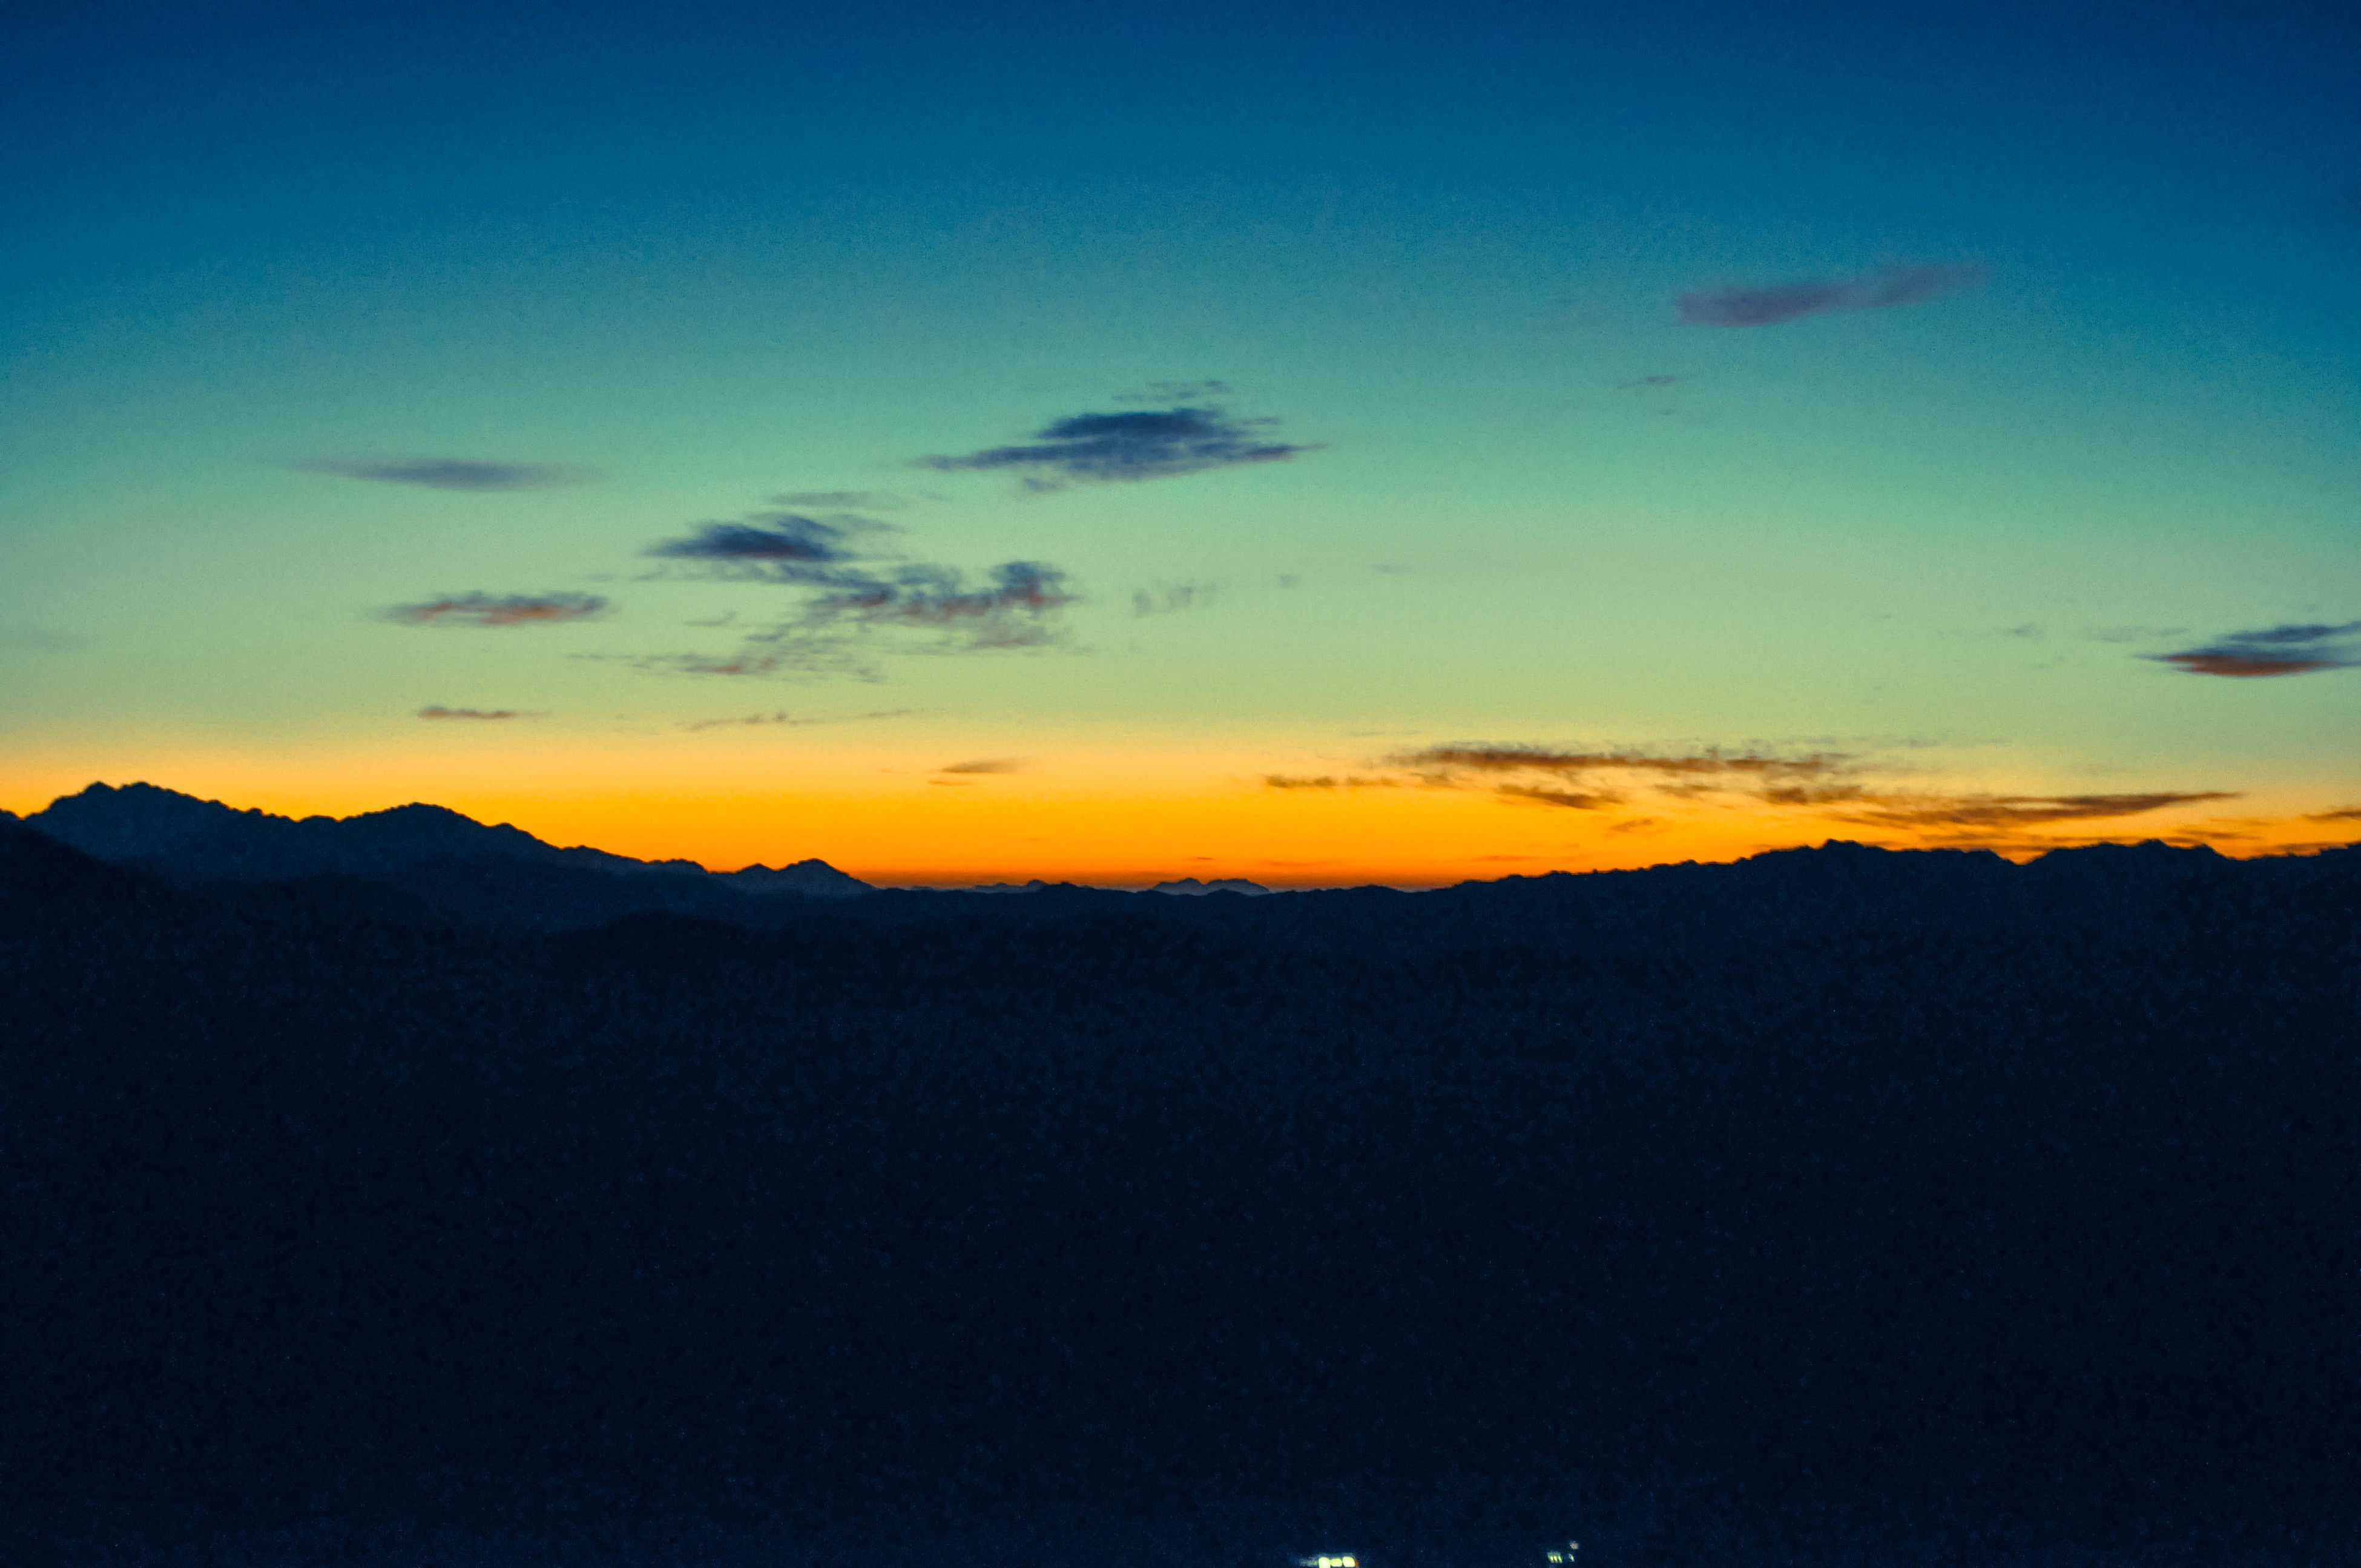 Beauty In Nature Tranquility Nature Silhouette No People Mountain Scenics Outdoors Sky Day Astronomy Twilight Twilight Sky Twilight Shoot